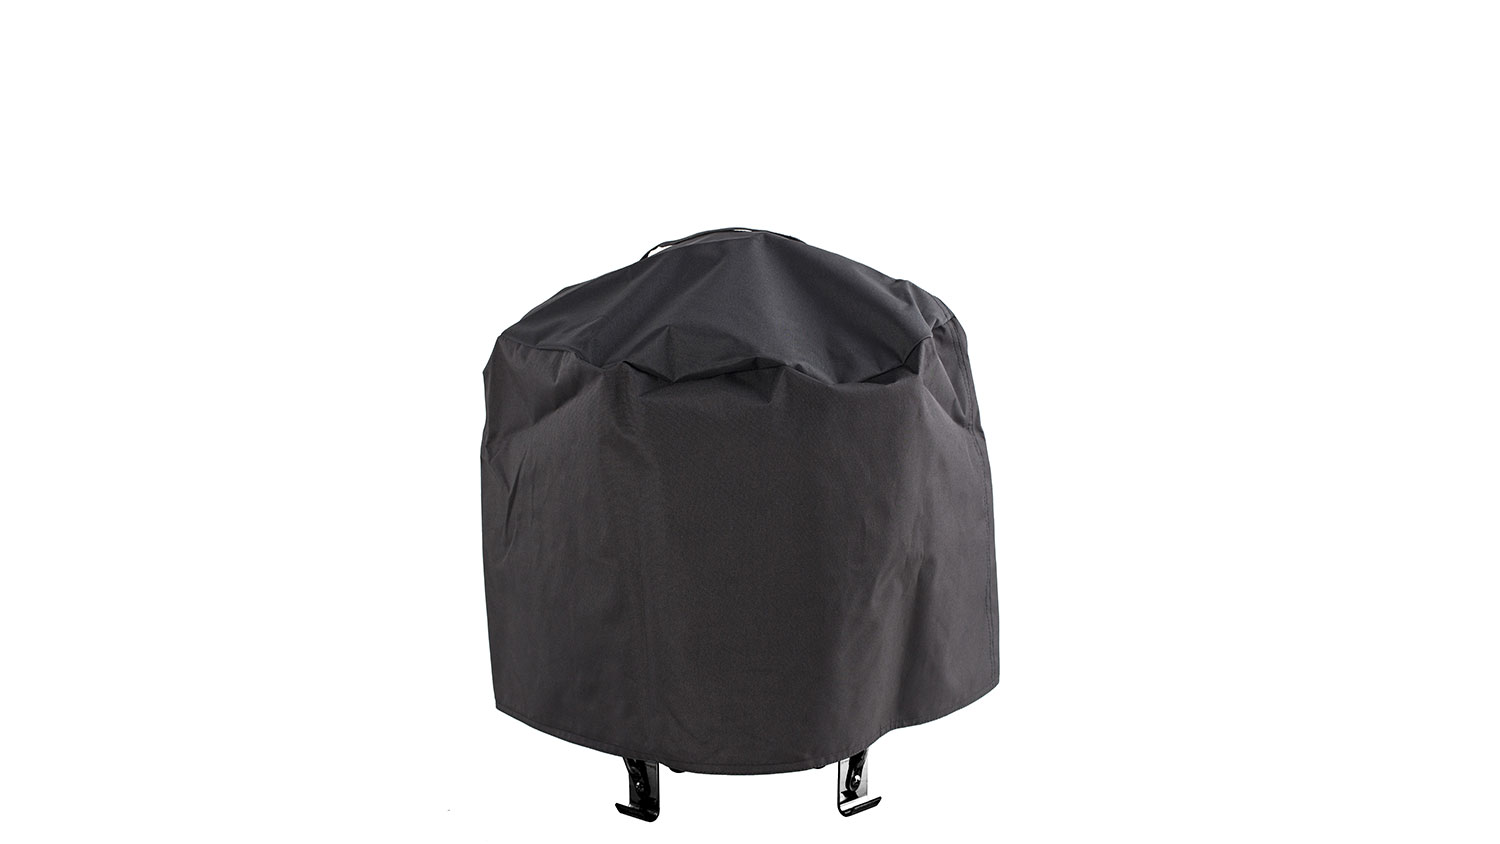 Kamado Chef Barbecue Cover - afdekhoes  - USA Spa's Coevorden